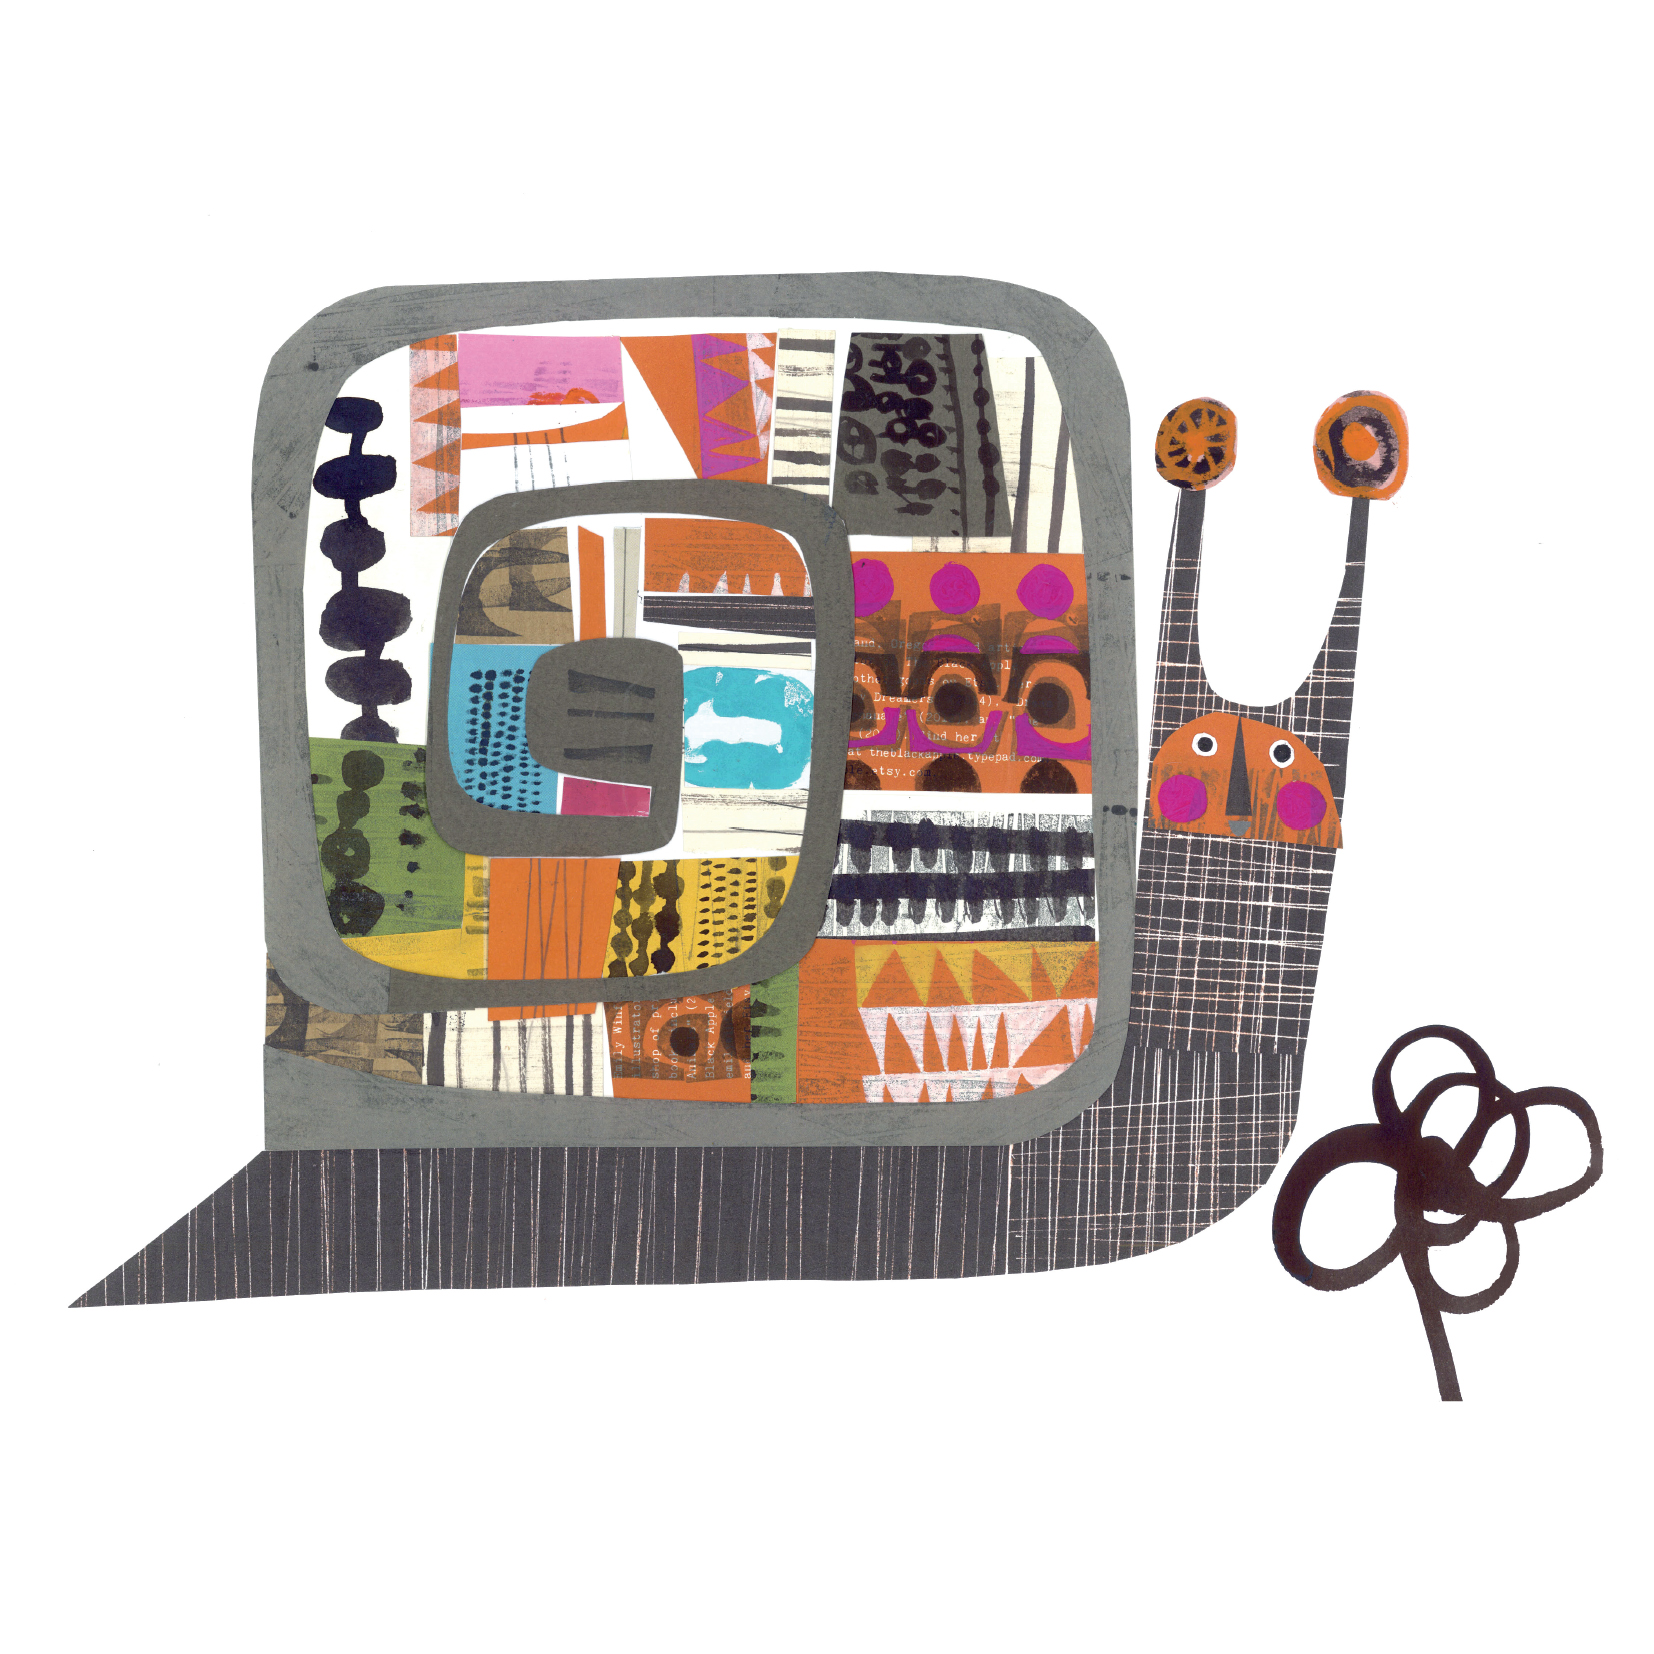 snail     SHOP    mixed media collage, available as a giclee print